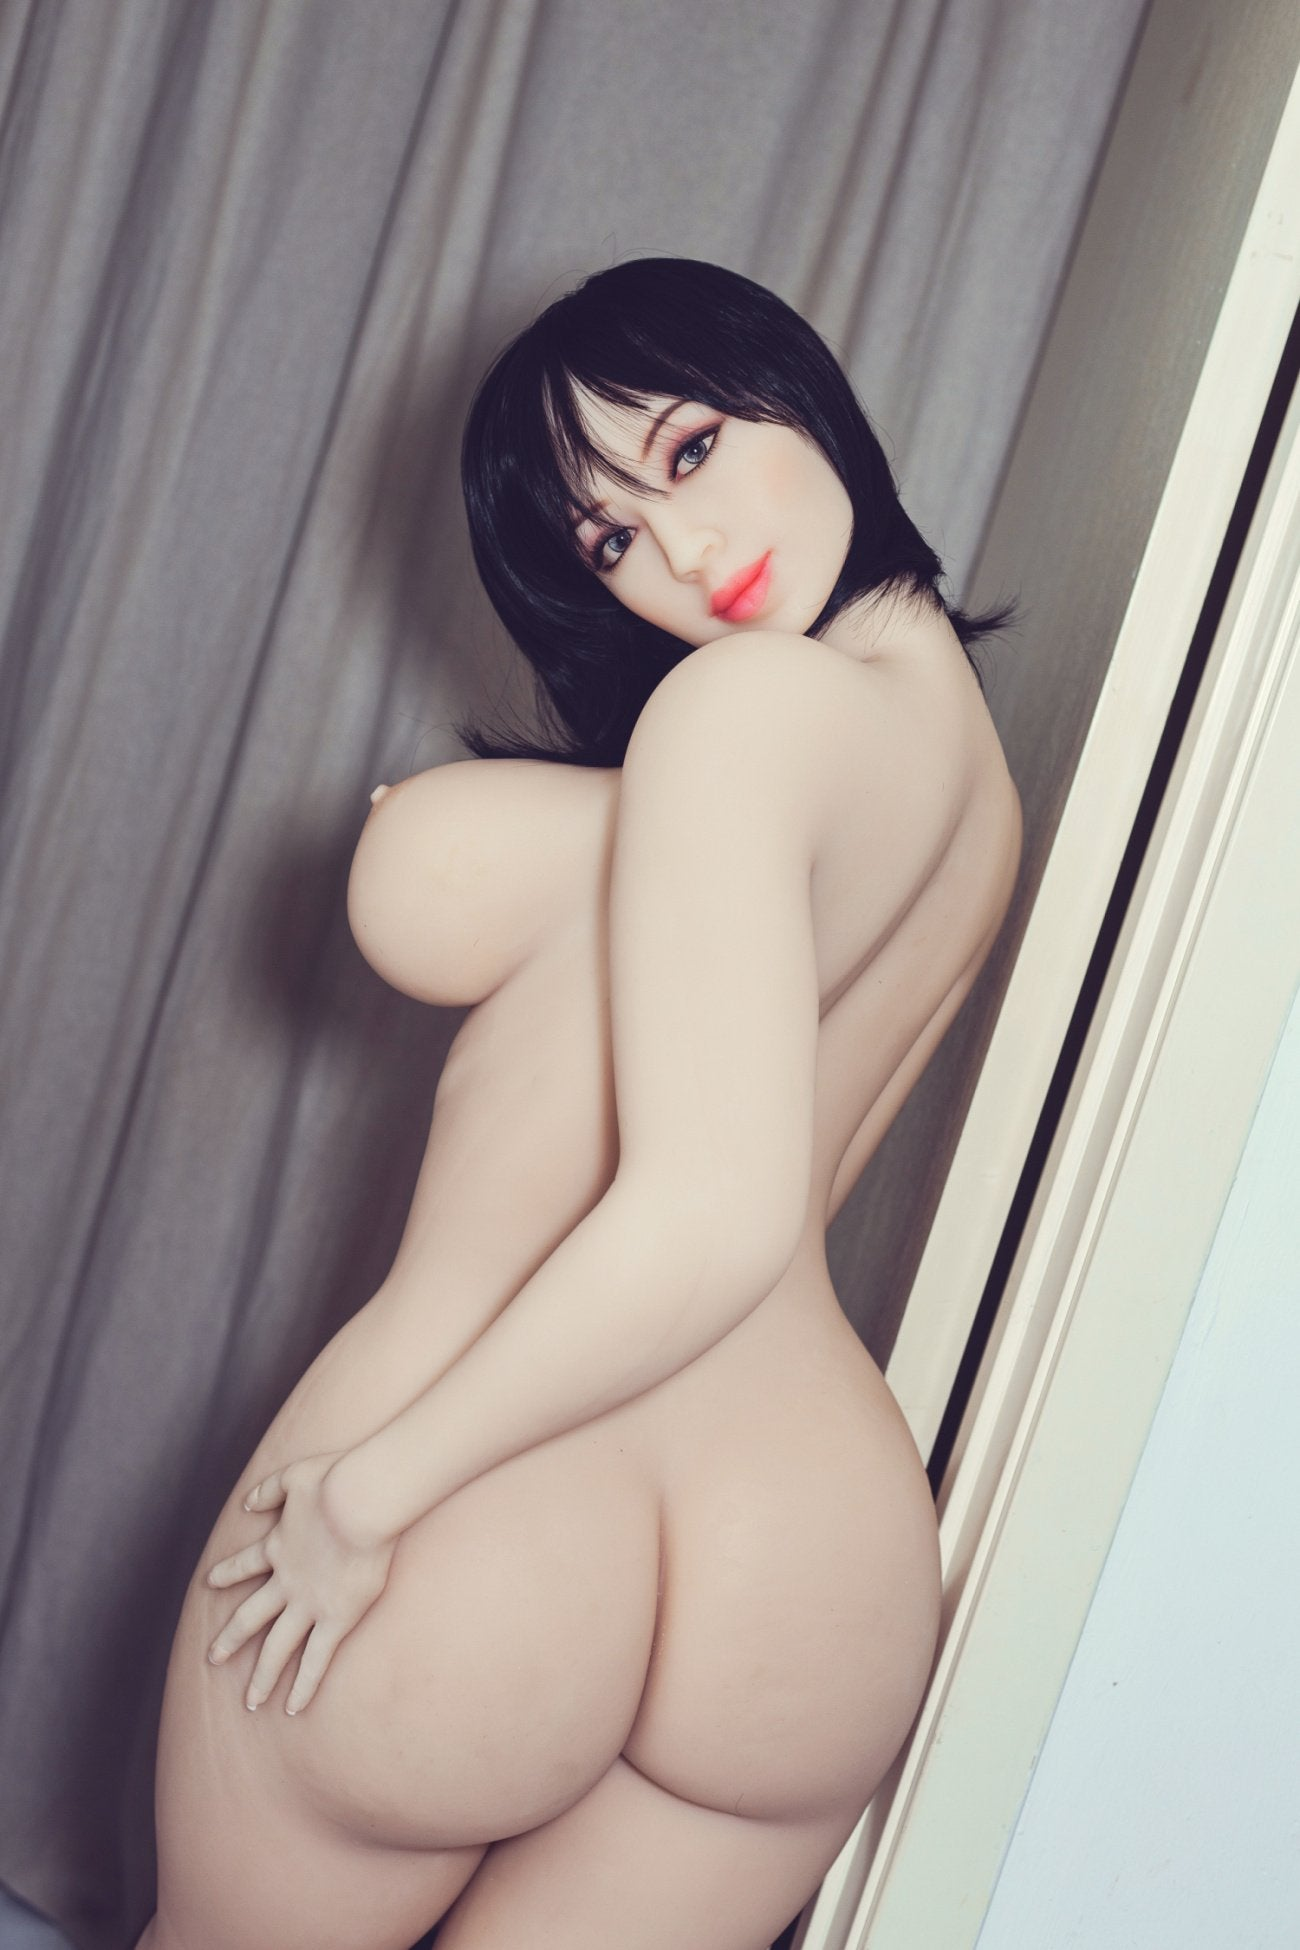 shar 163cm black hair curvy big boobs tpe wm bbw sex doll(7)